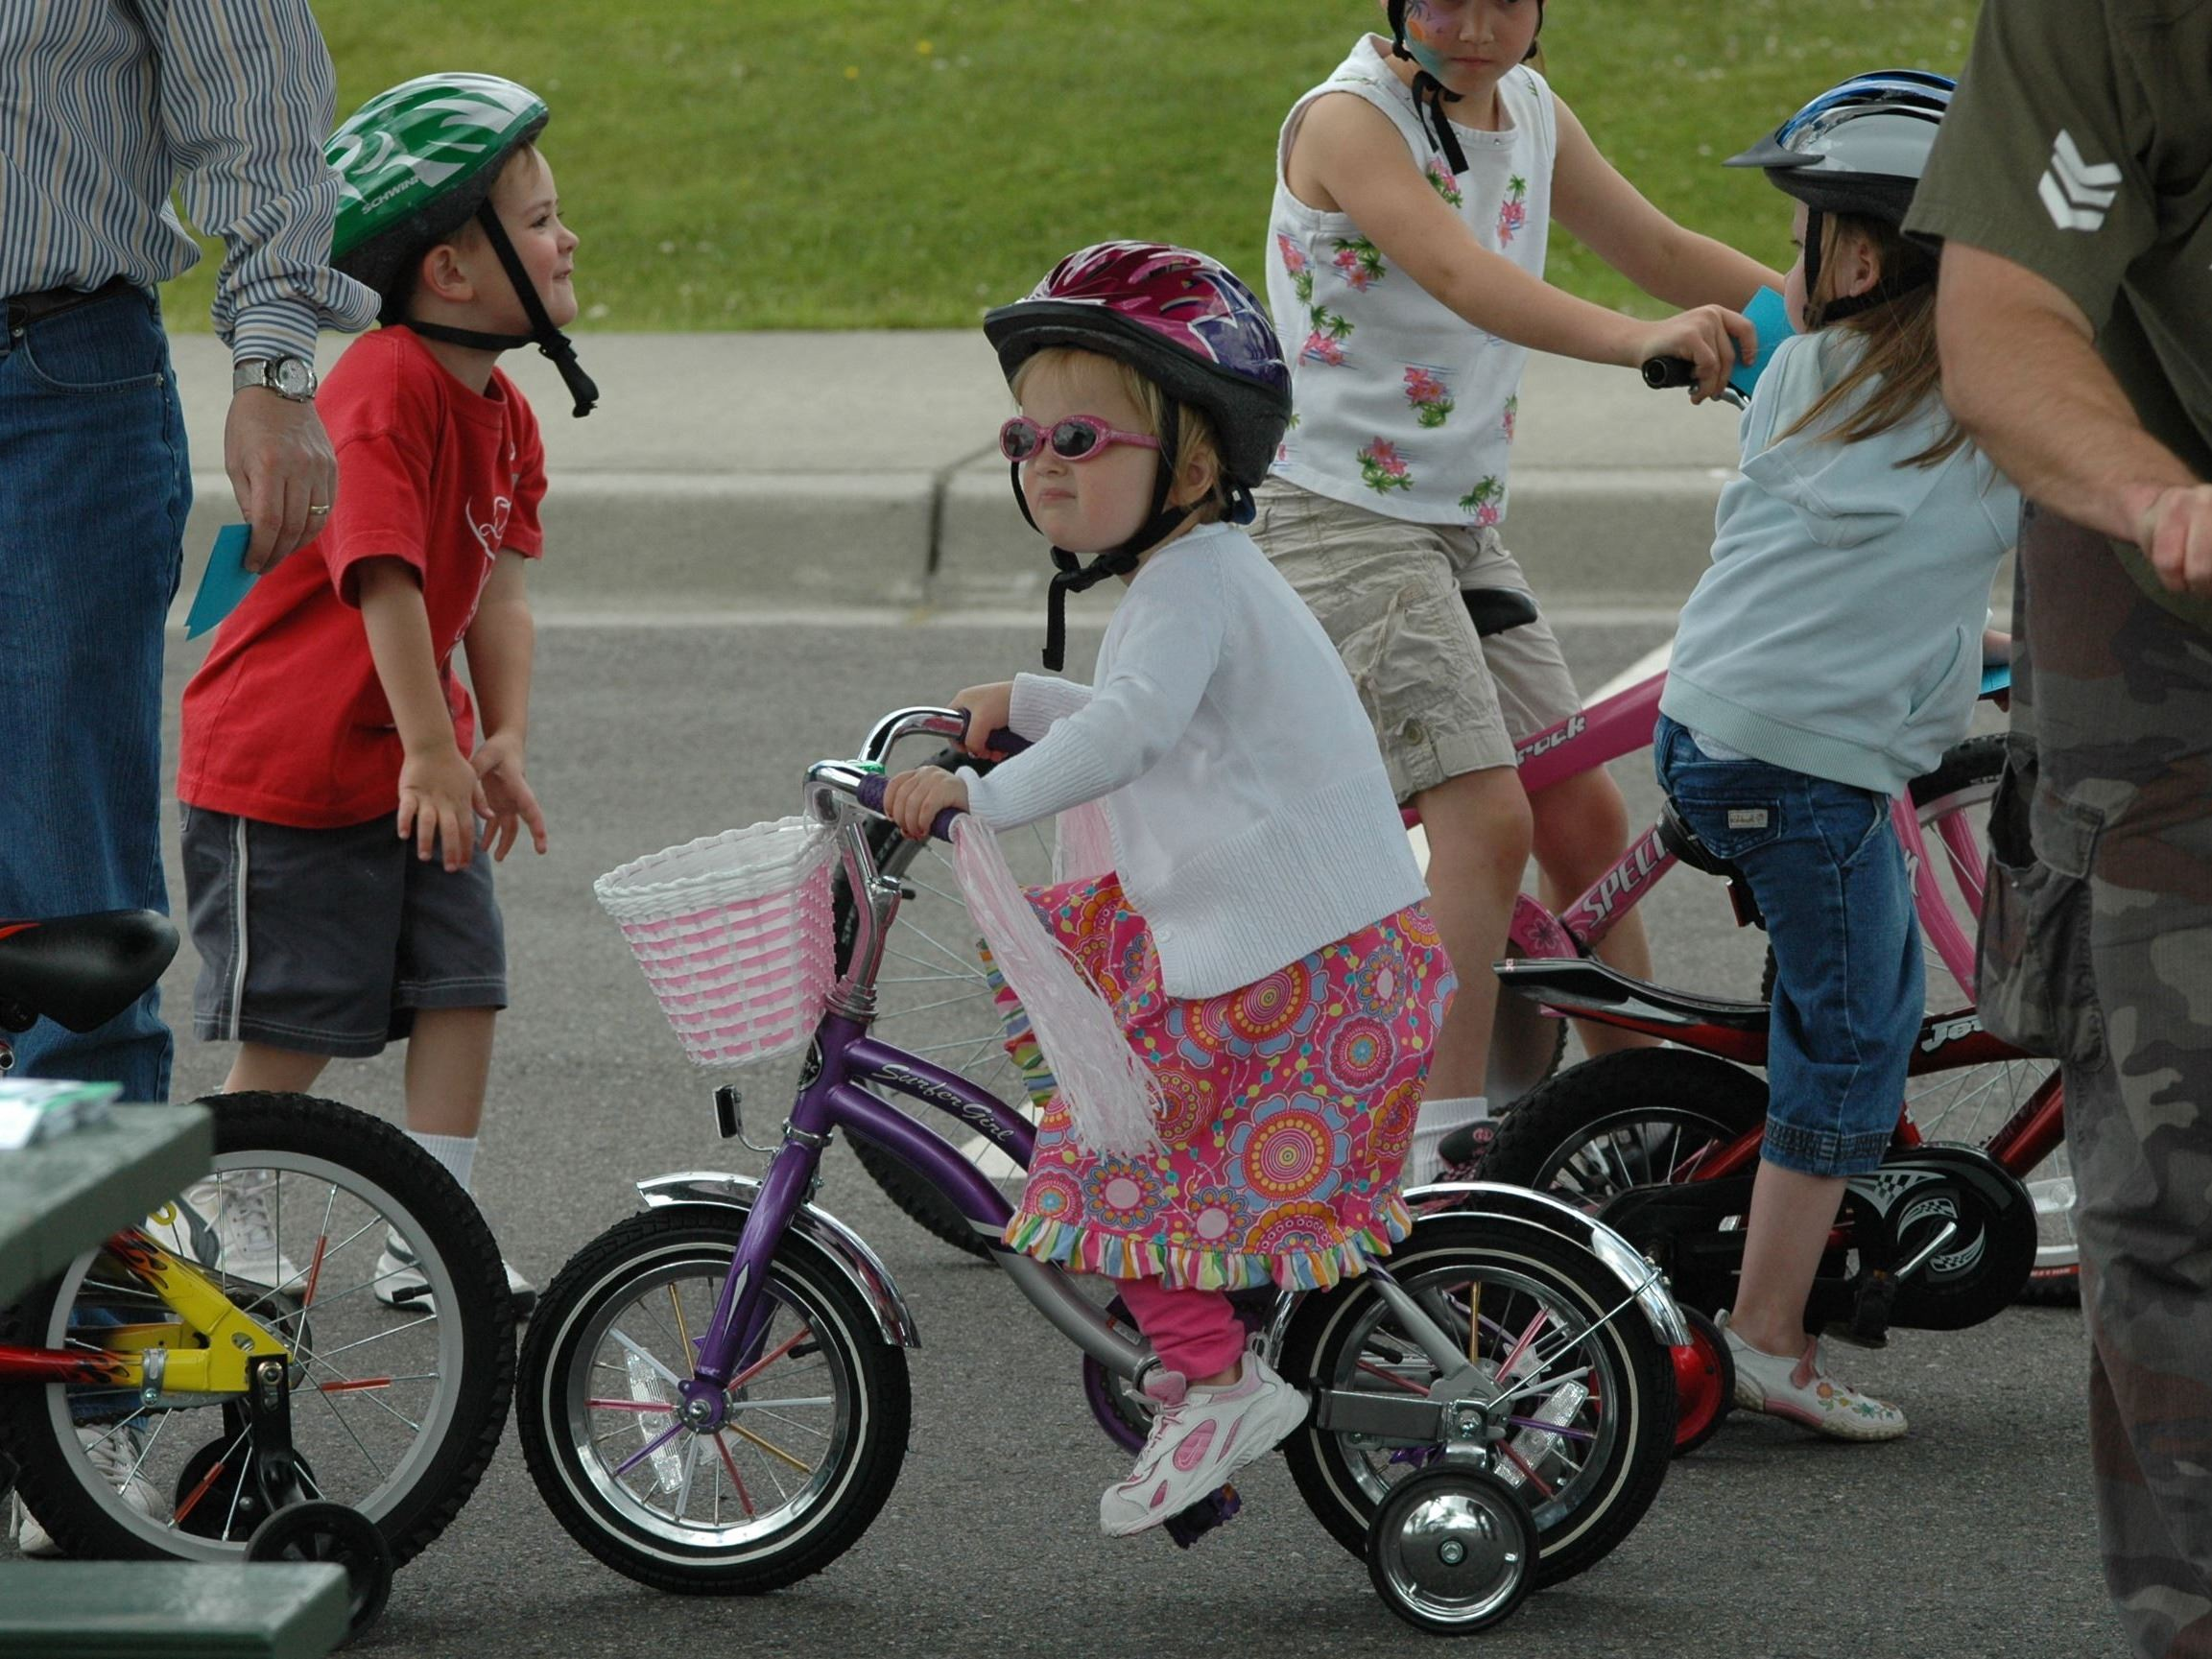 Bicycle Safety Rodeo Girl with Helmet